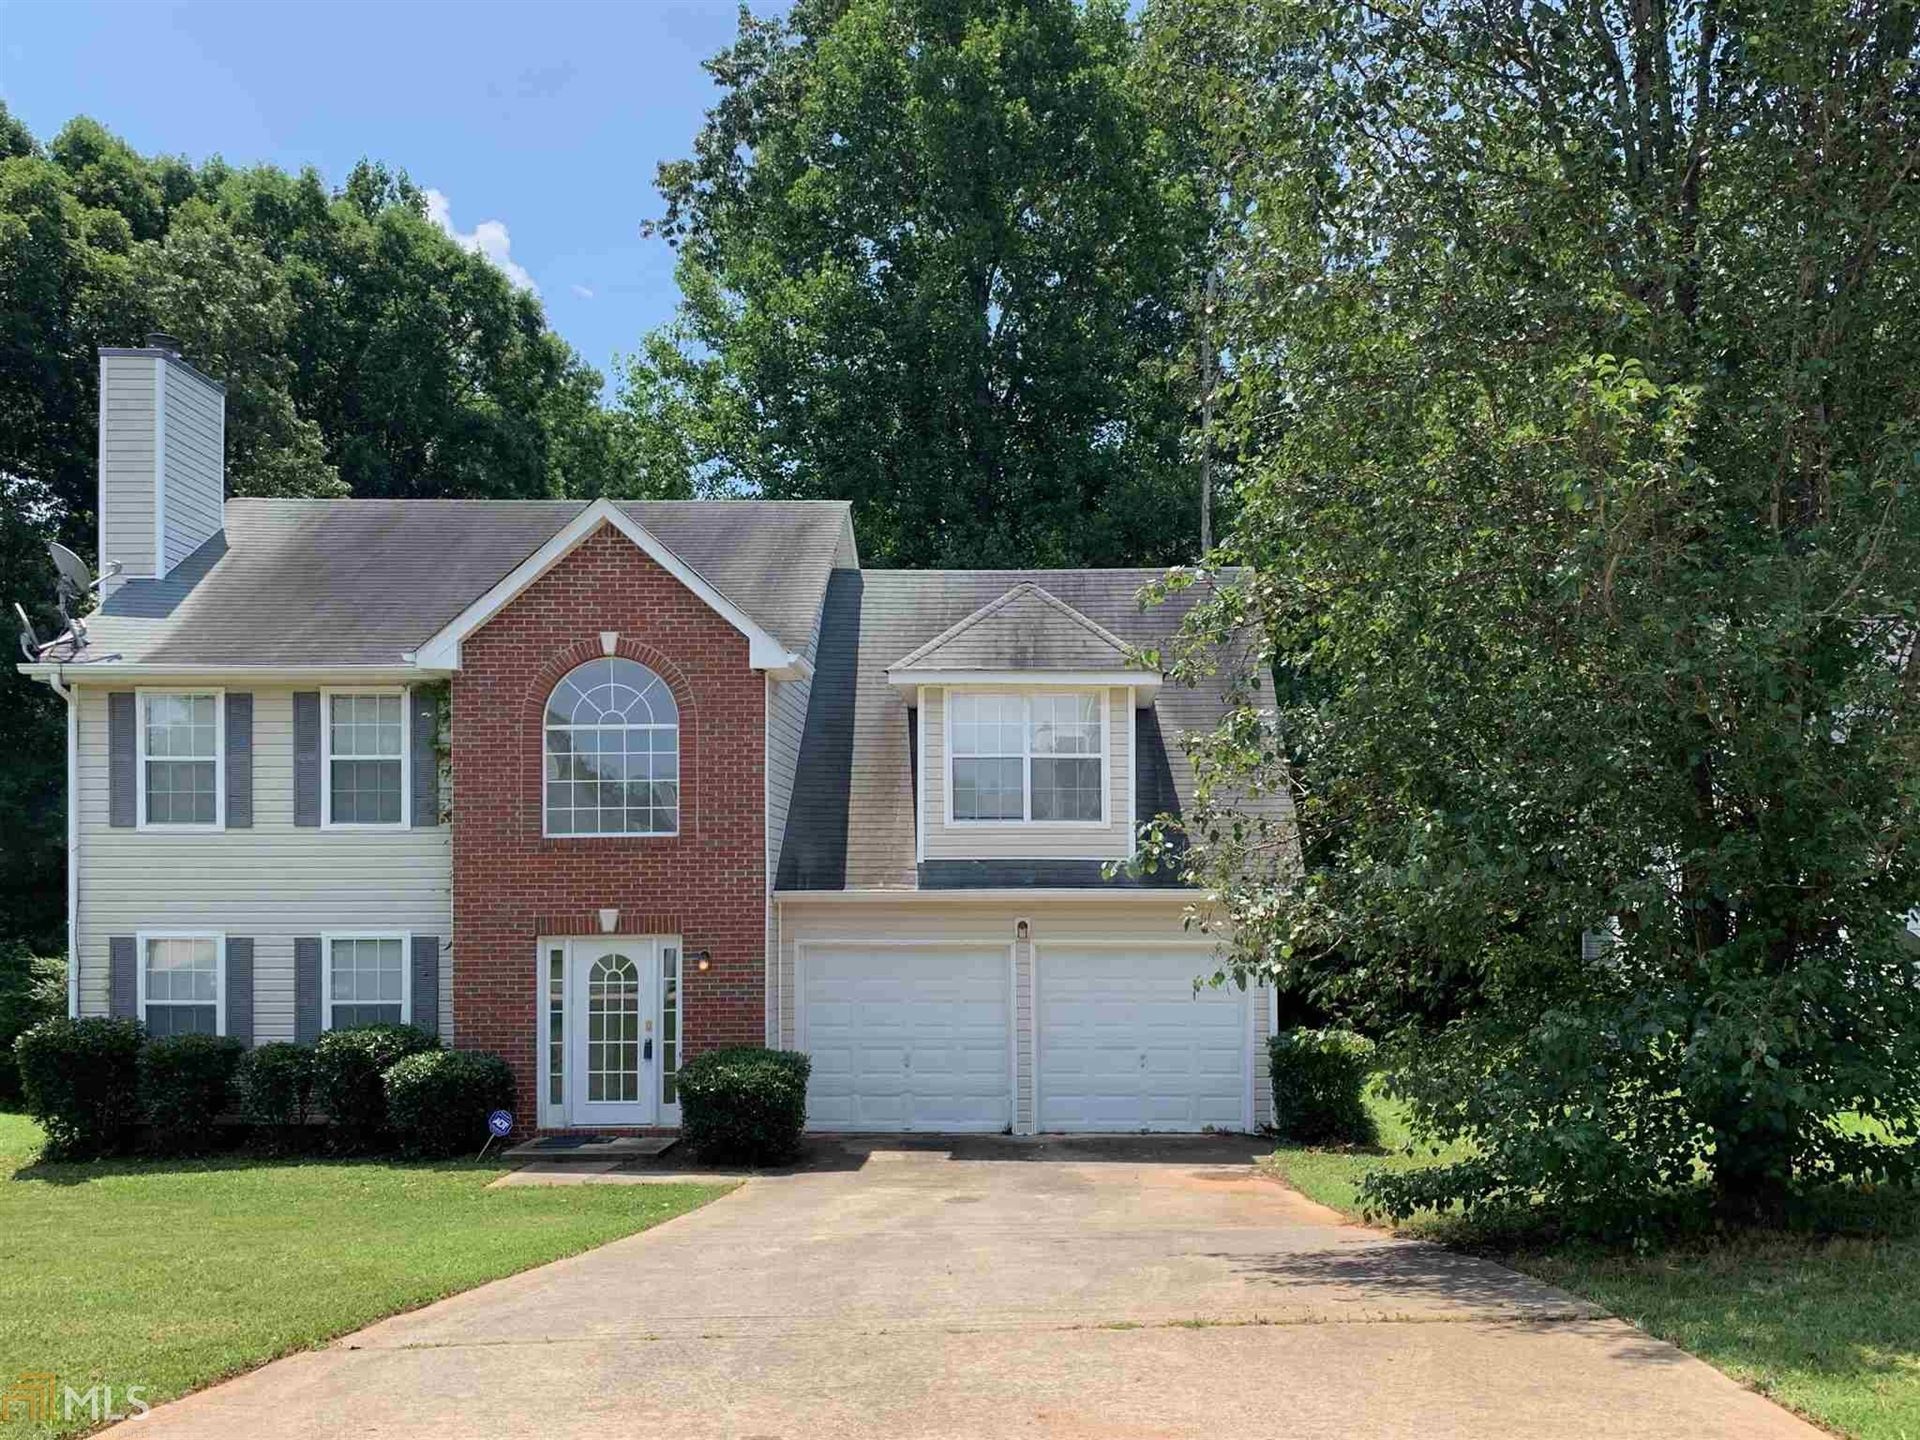 210 Cinnamon Oak Cir, Covington, GA 30016 - #: 8789145